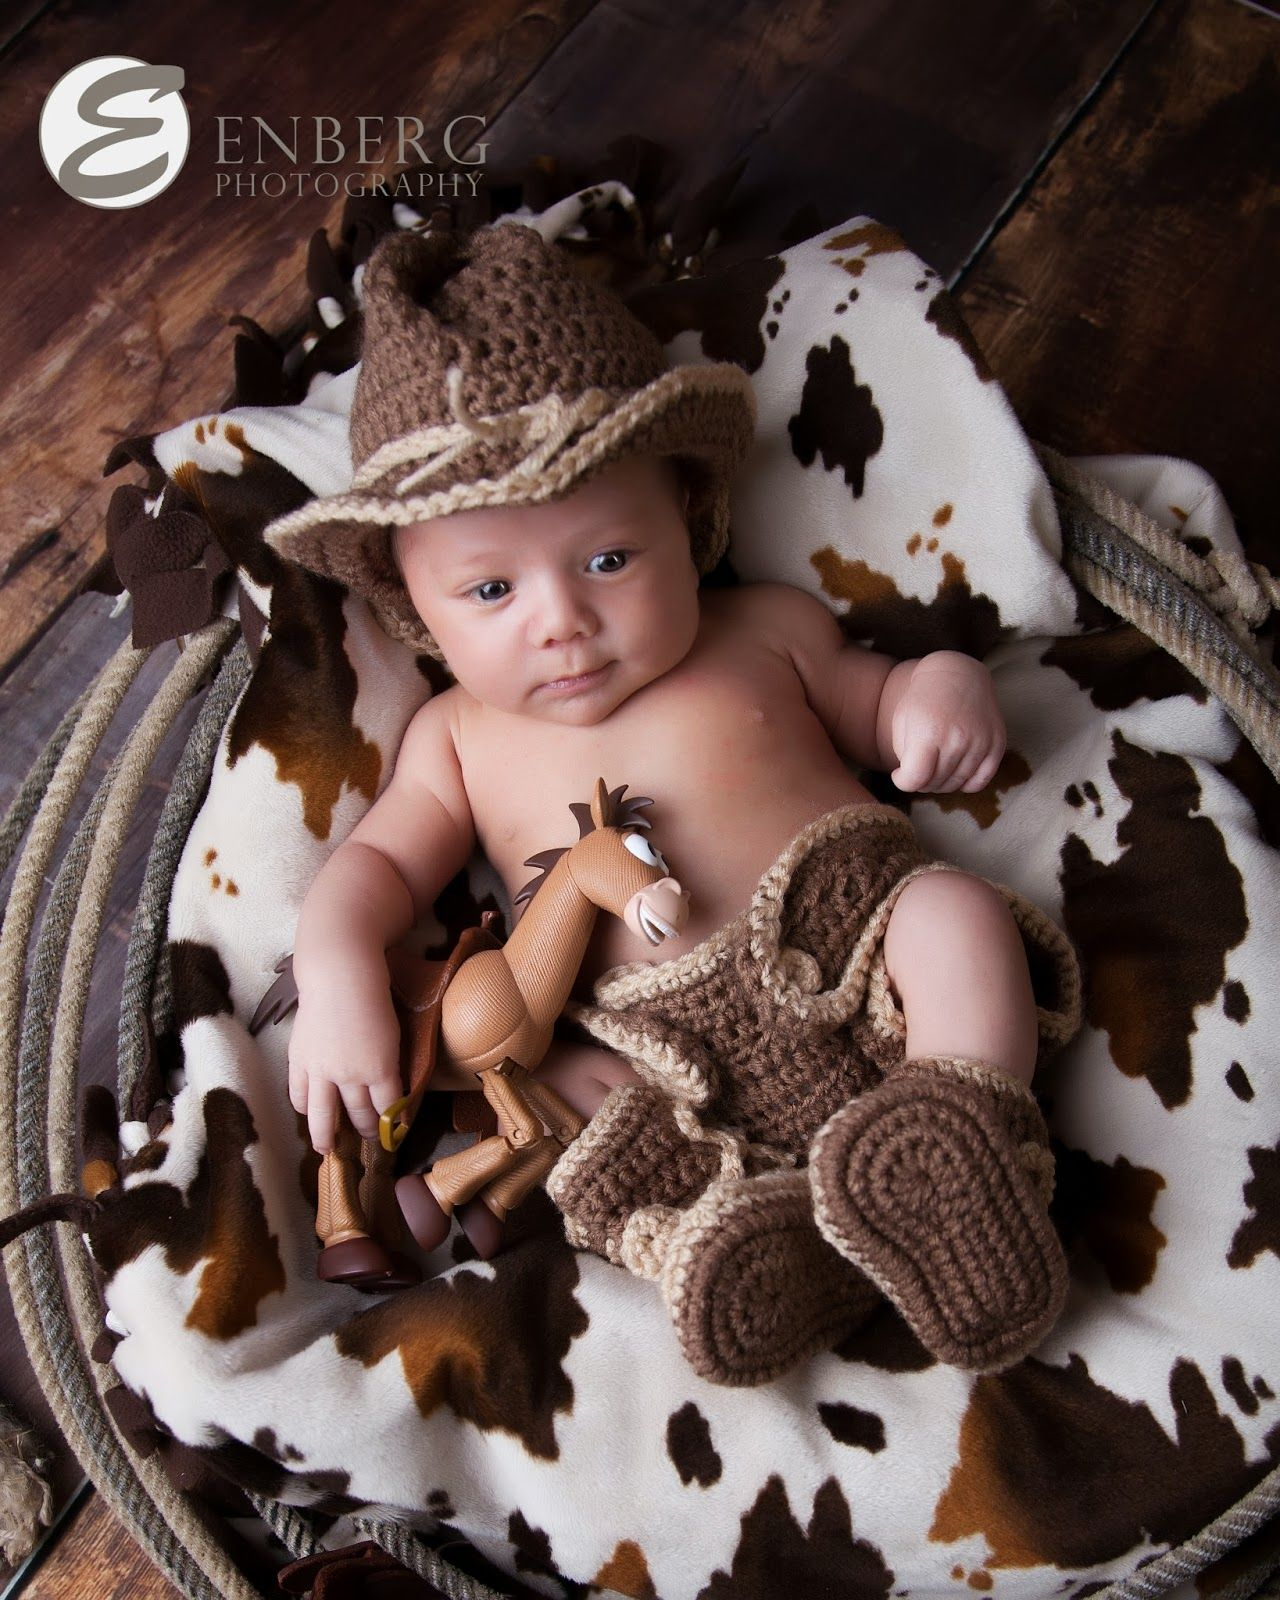 Crochet Cowboy hat, diaper cover and boots | Photography | Pinterest